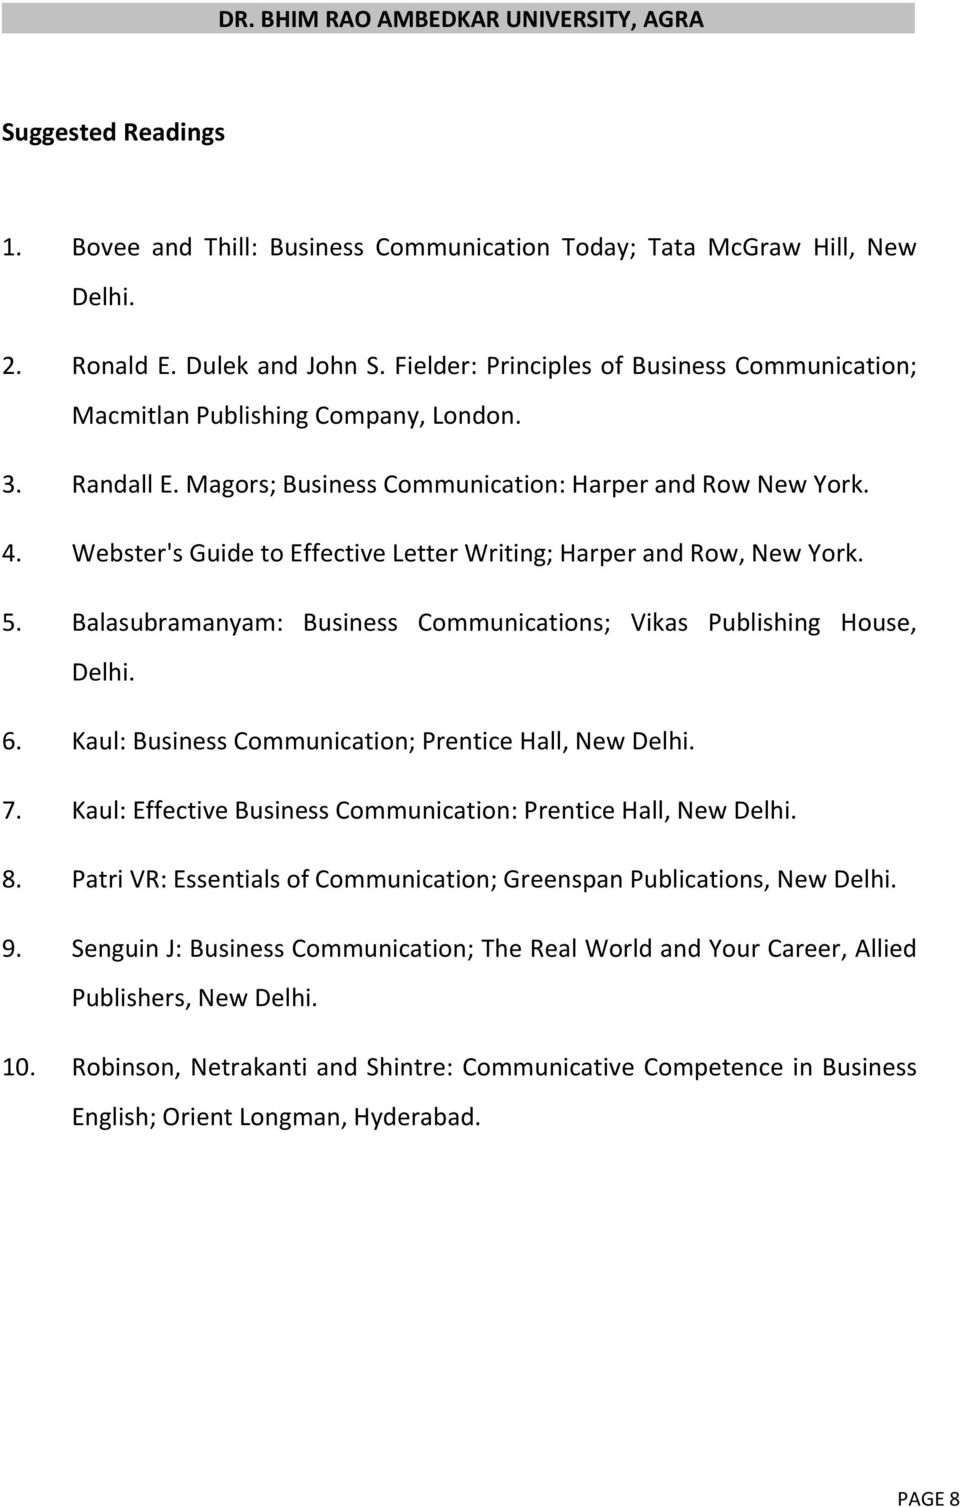 Webster's Guide to Effective Letter Writing; Harper and Row, New York. 5. Balasubramanyam: Business Communications; Vikas Publishing House, Delhi. 6.